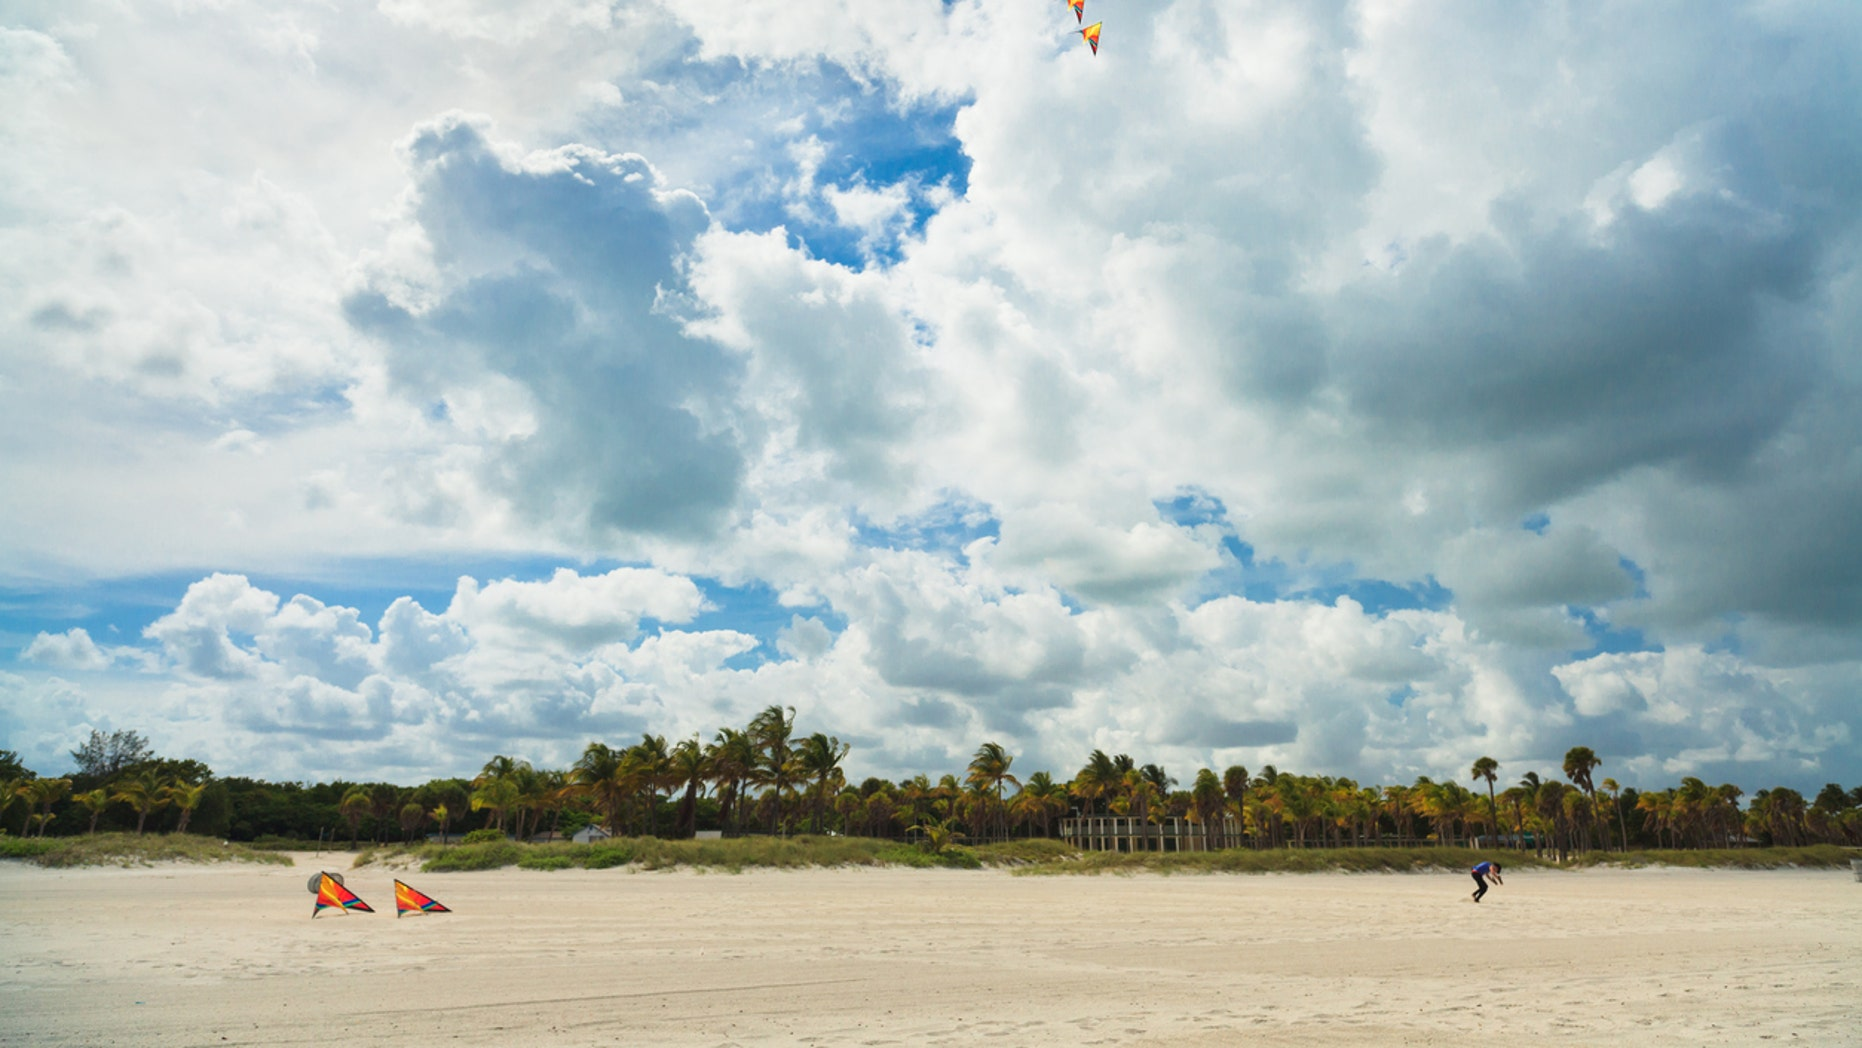 The girl was celebrating her third birthday at Crandon Beach in Key Biscayne.